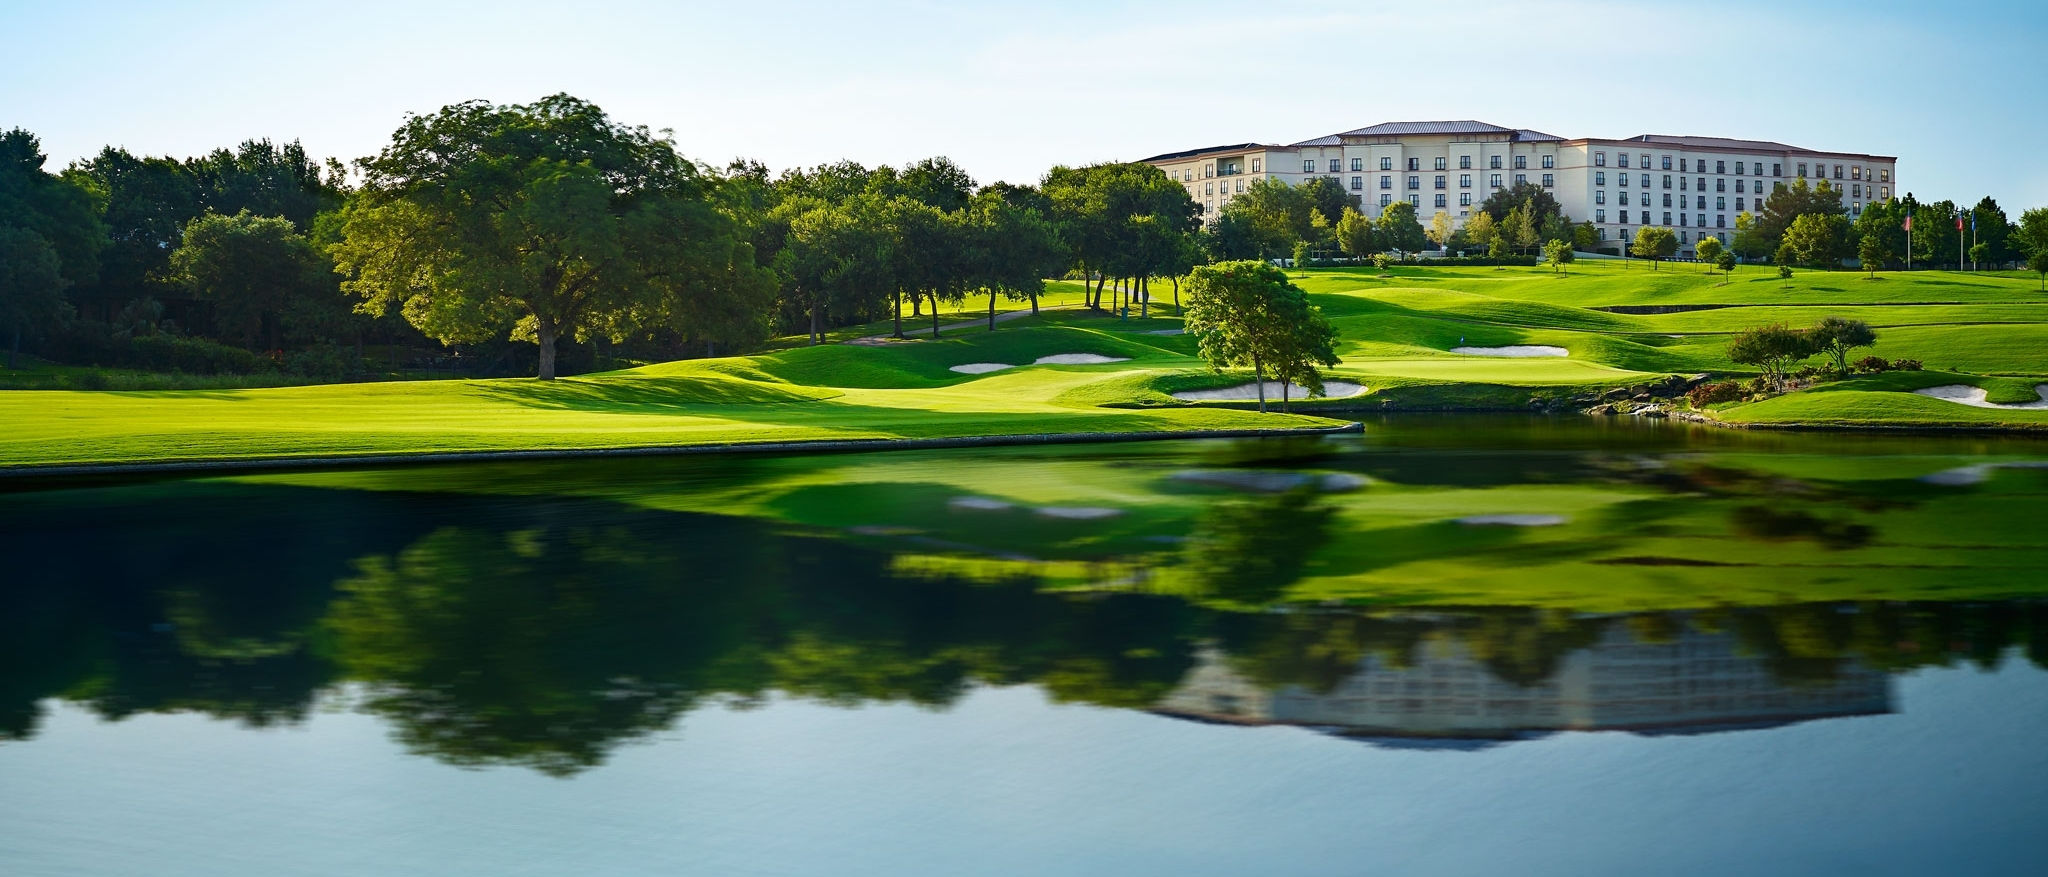 The Westin Stonebriar Hotel & Golf Club - Golf Course